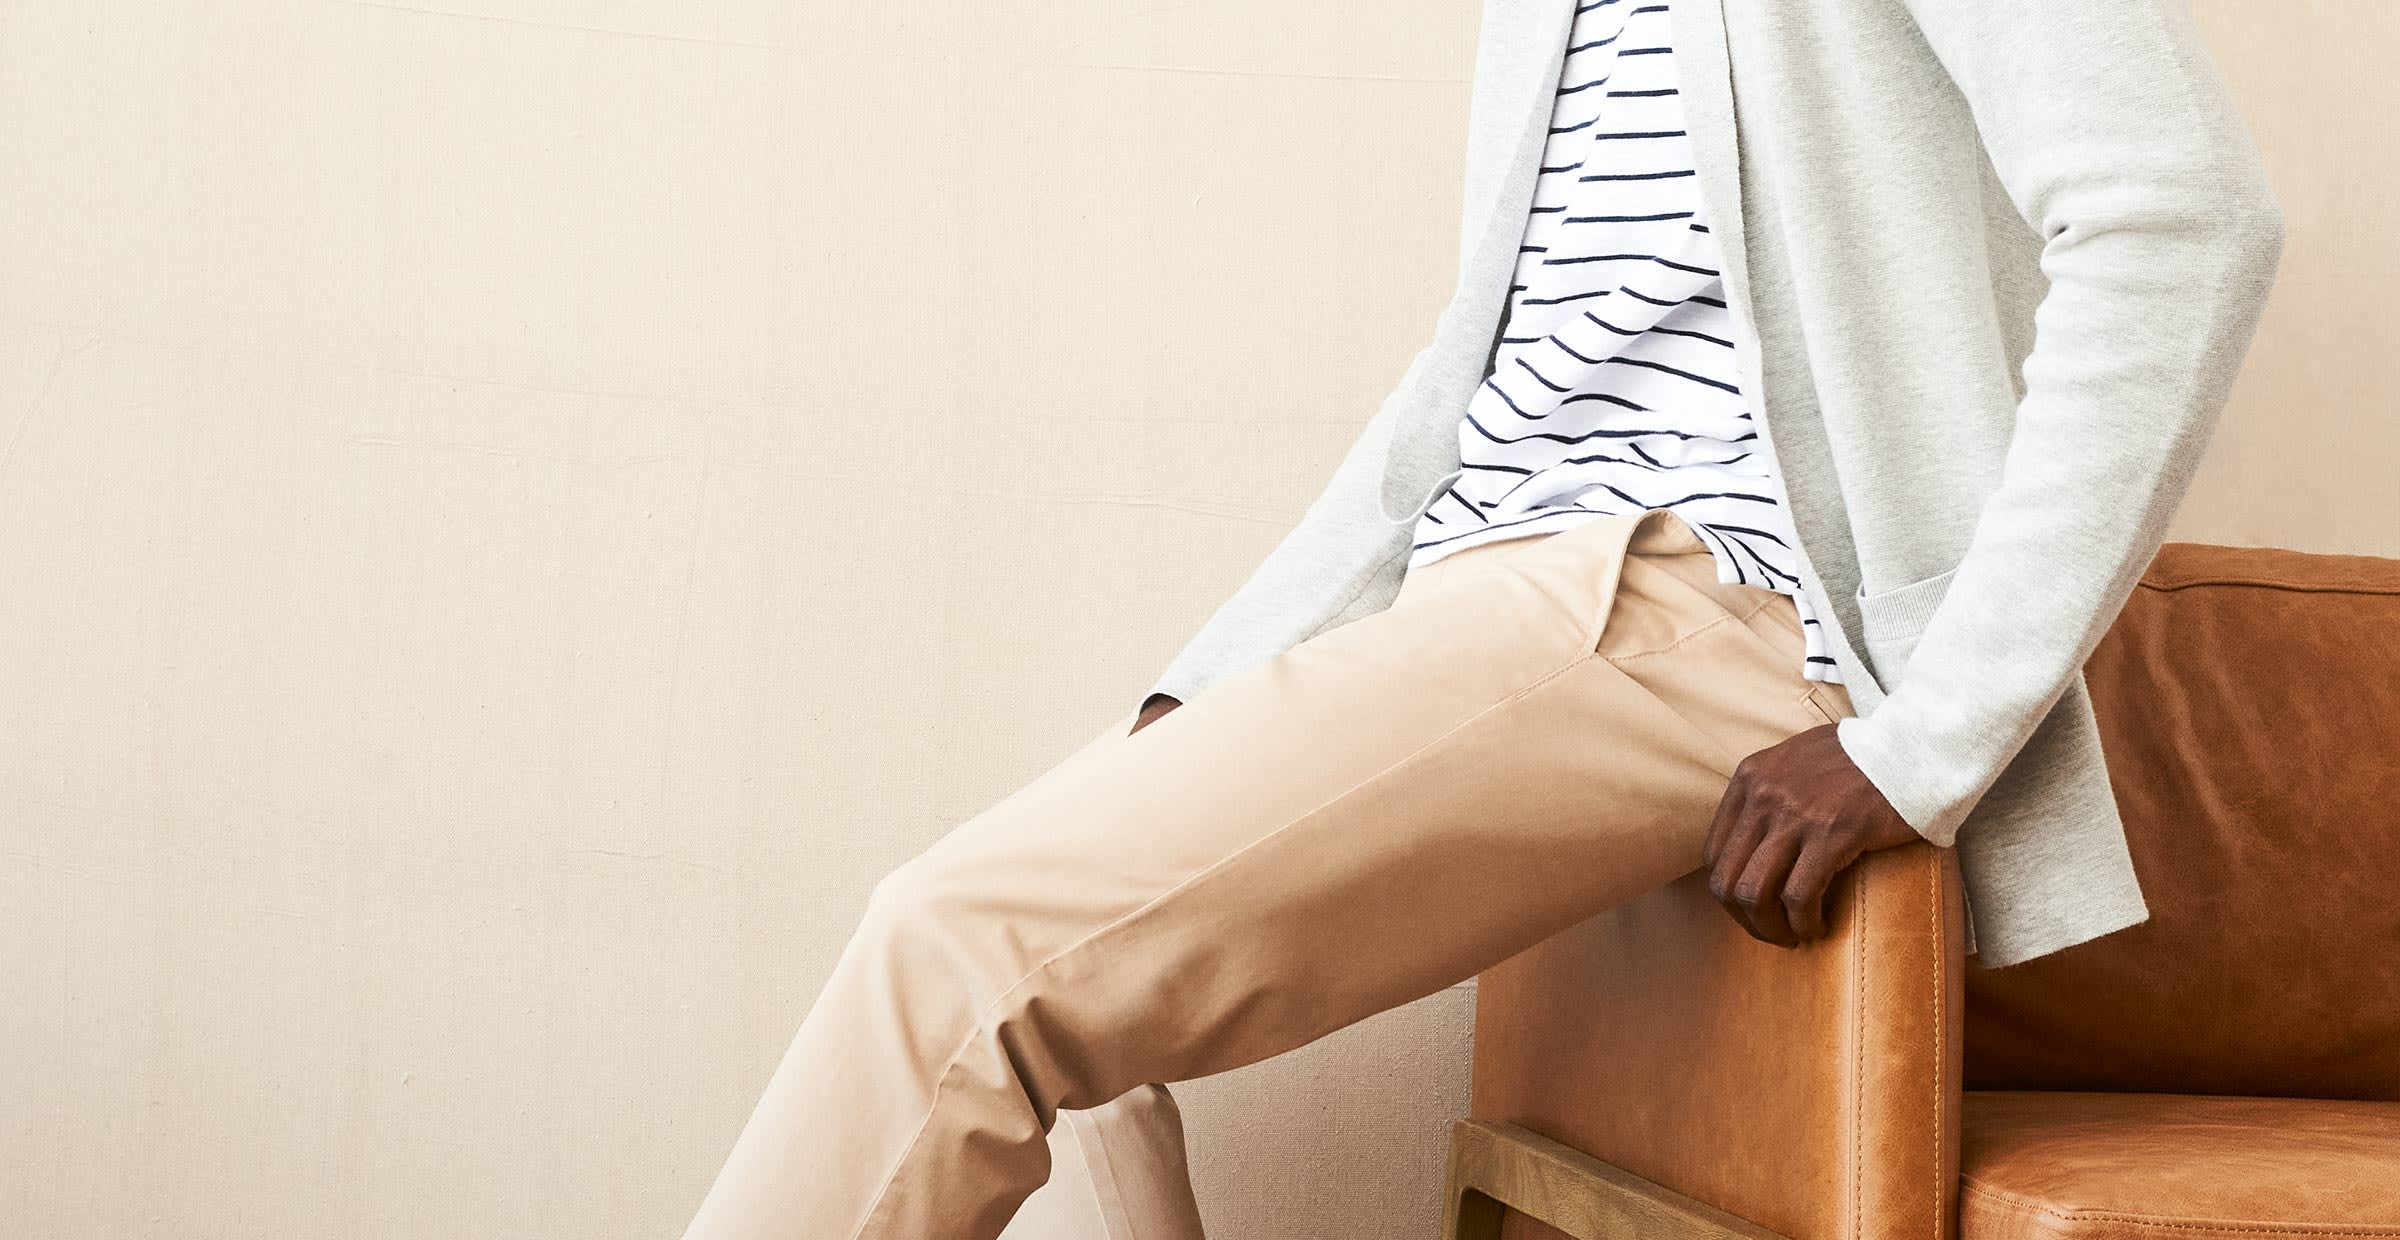 Classic Men's style includes cable knit sweater and chinos